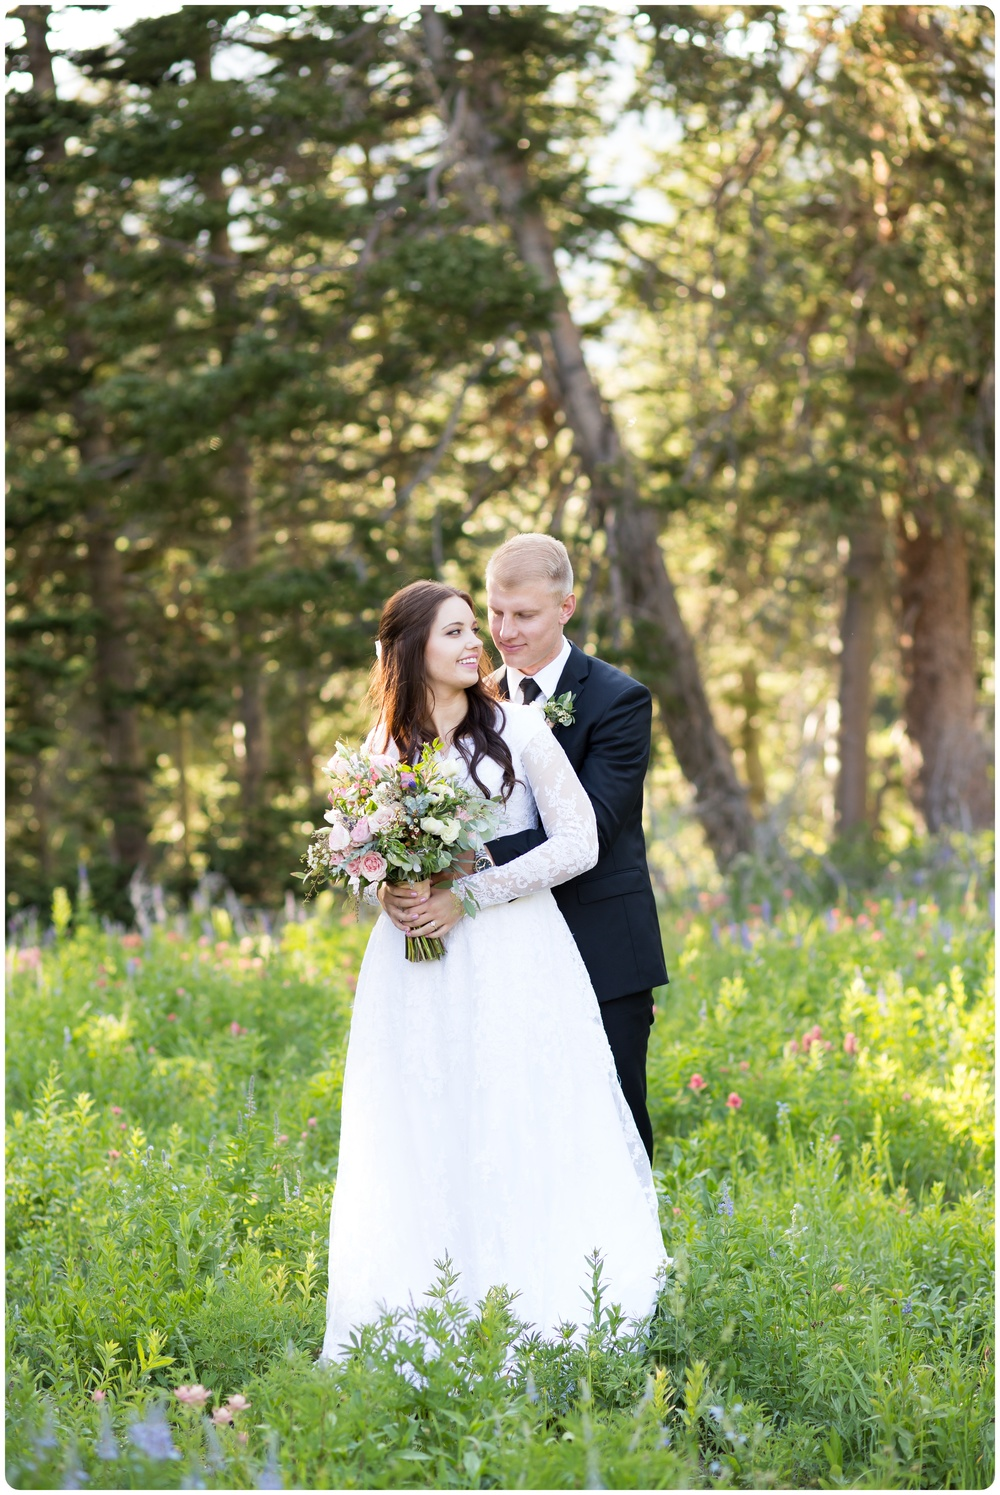 Rachel Lindsey Photography | Salt Lake City, UT | Engagements & Wedding Photographer | Albion Basin